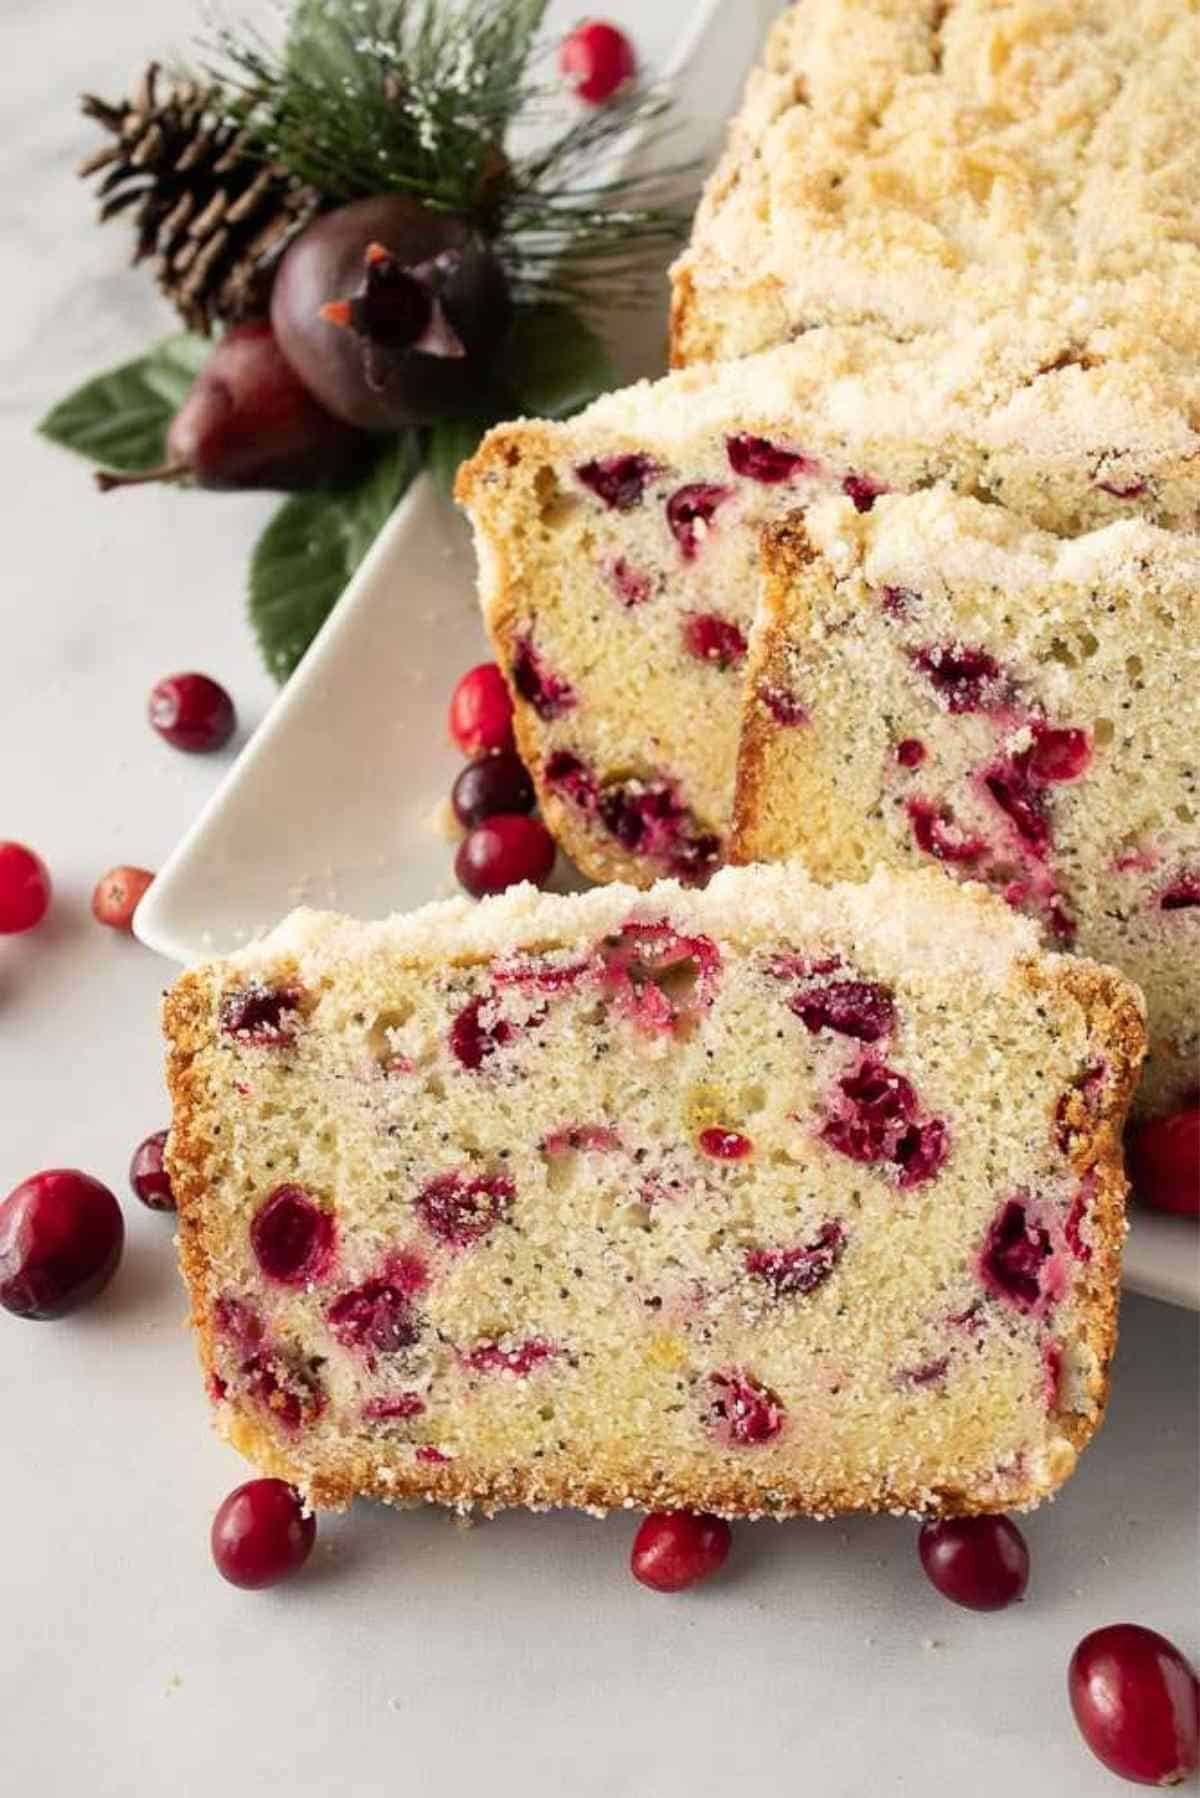 A finished loaf of cranberry poppy seed bread placed and sliced on a long plate garnished with fresh cranberries.